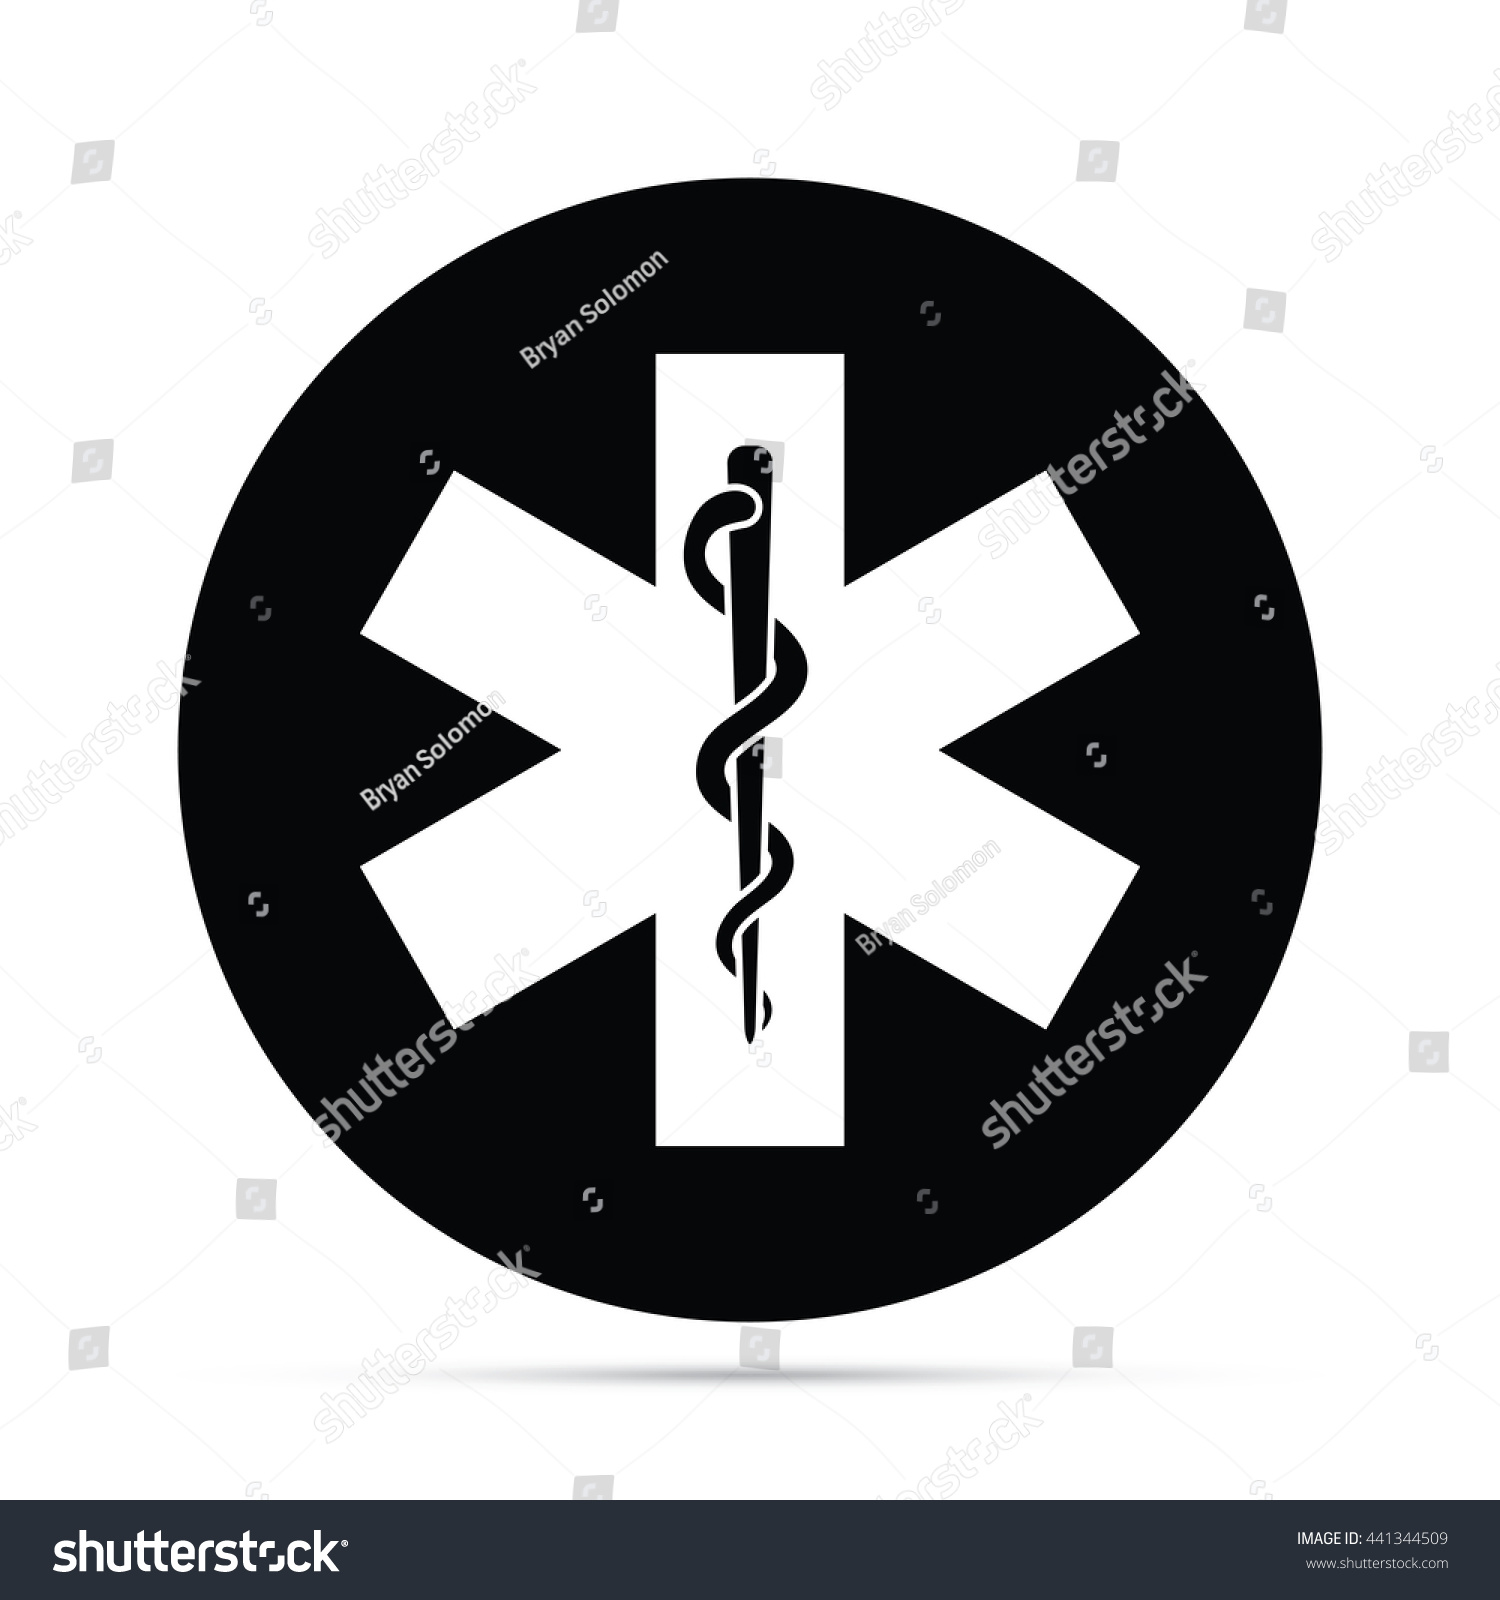 Circular snake staff medical symbol icon stock illustration circular snake staff medical symbol icon raster version buycottarizona Image collections